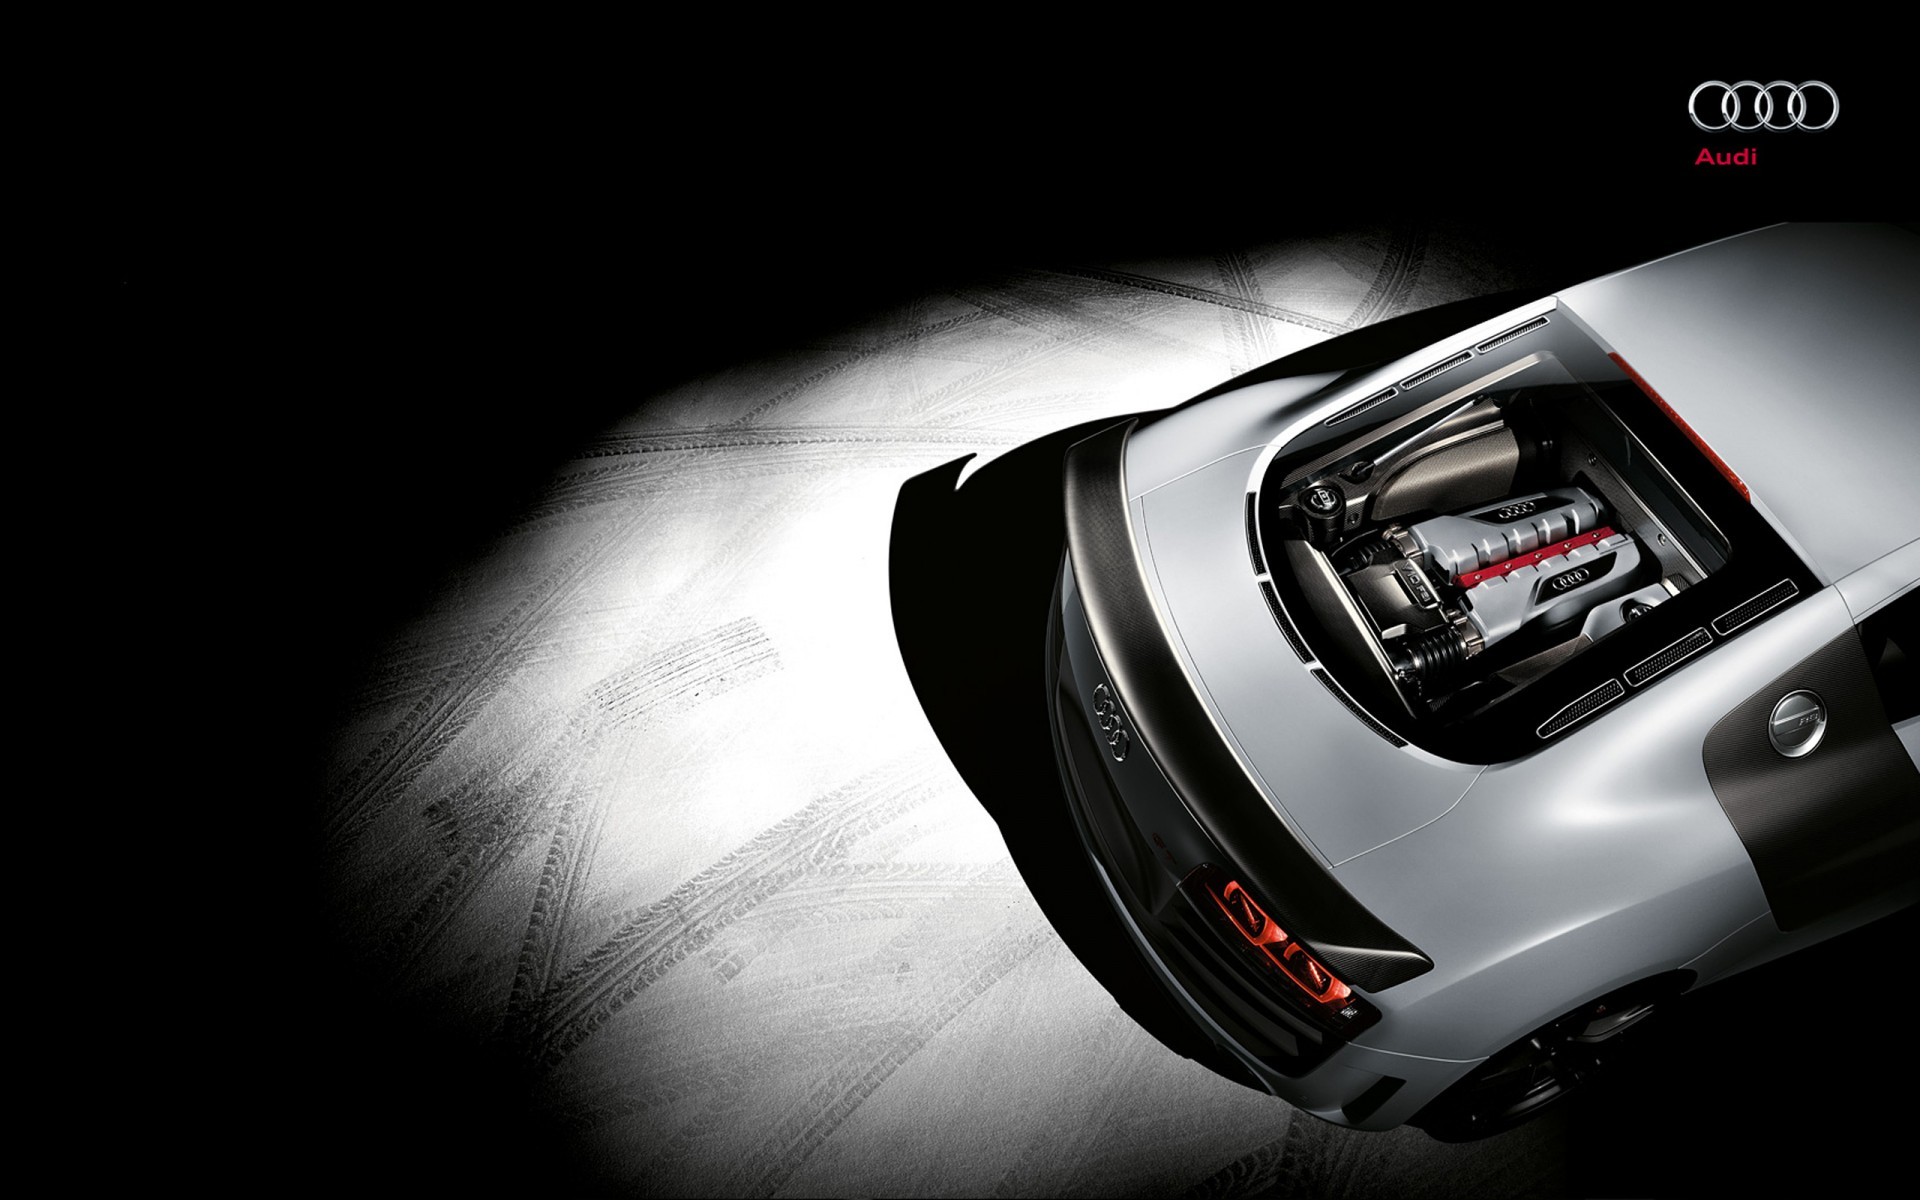 wallpapers engine car audi - photo #1